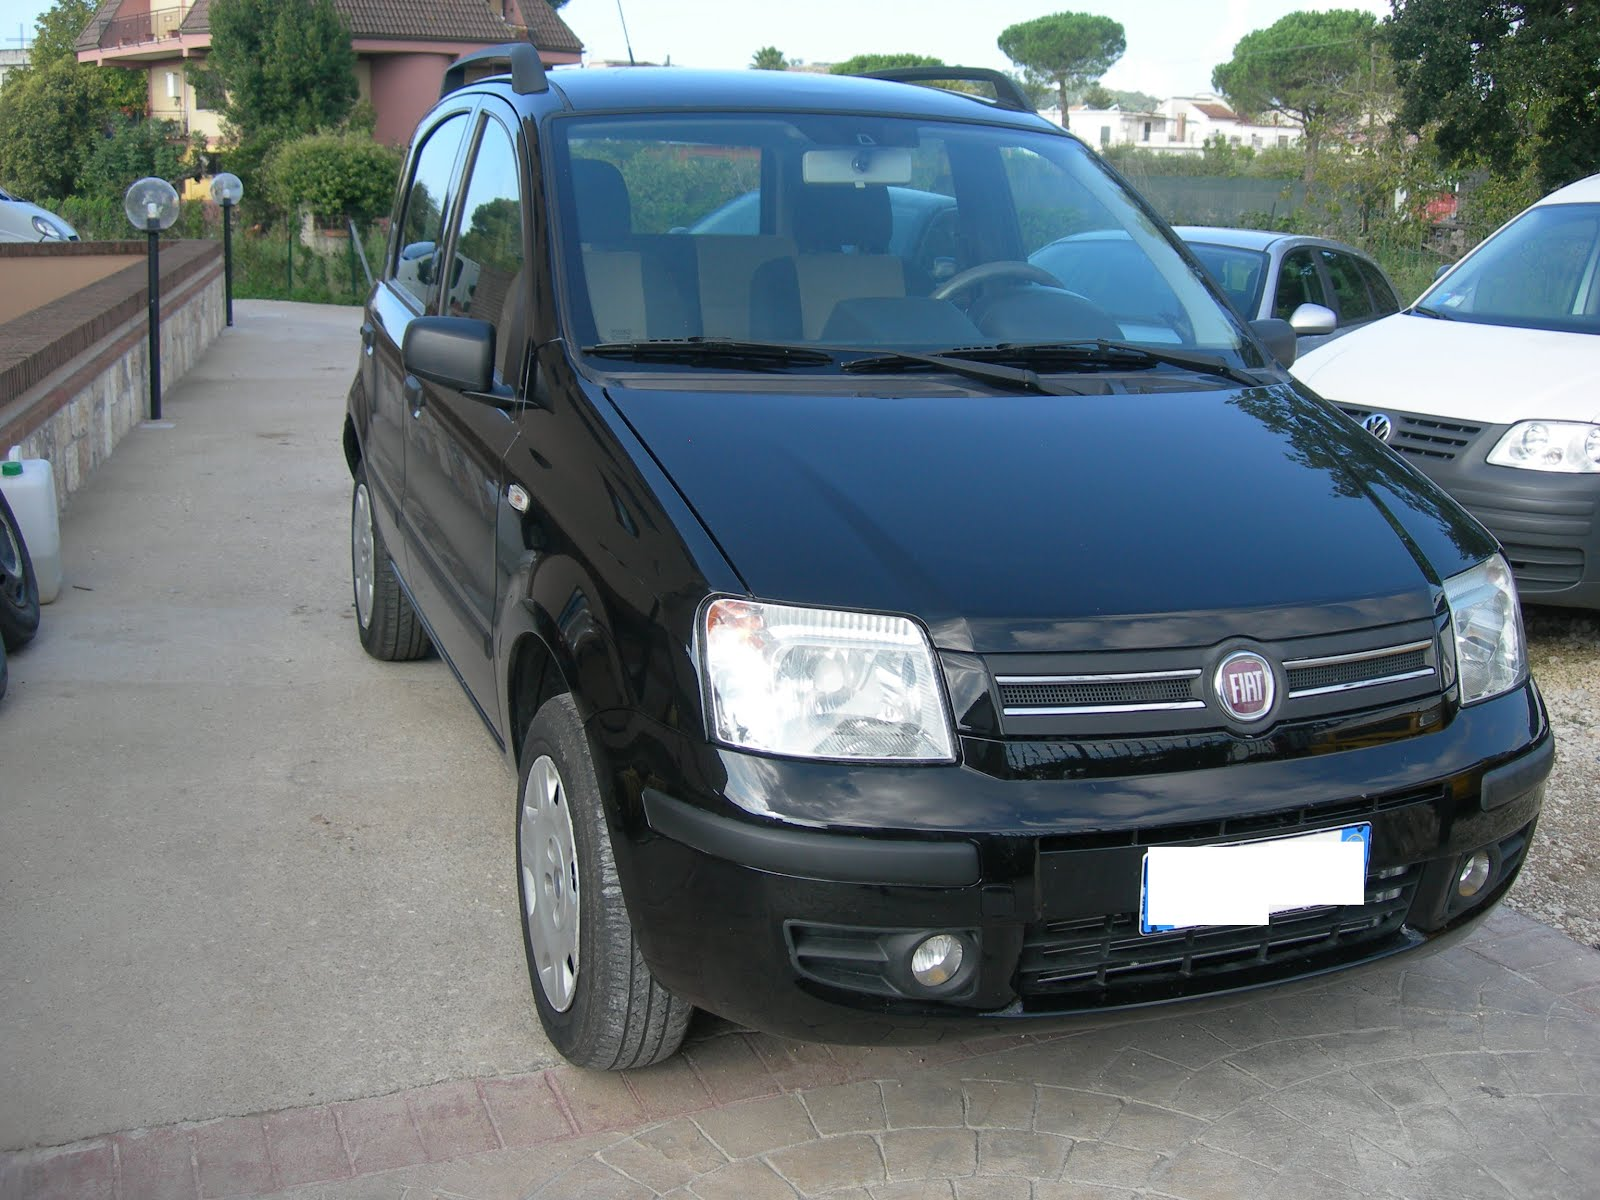 Fiat Panda 1.2 Natural Power Metano dinamyc anno 2008 Prezzo 4.500,00 euro